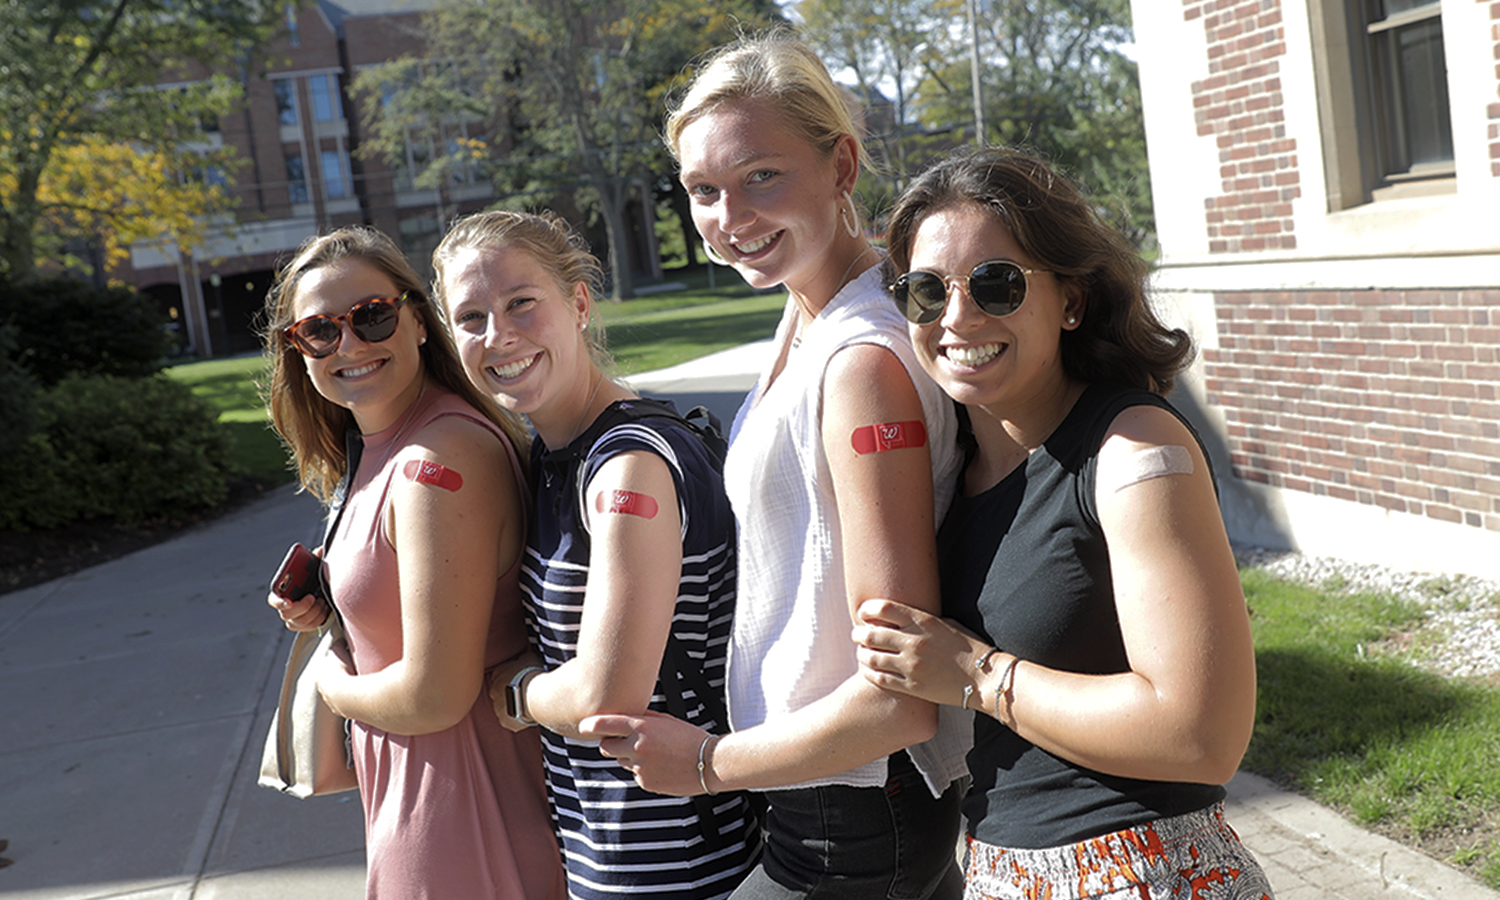 Christine Moloney '17, Maya Weber '20, Cailin Gensler '21 and Audrey Morin '21 pose for a photo after receiving their flu shots on campus.